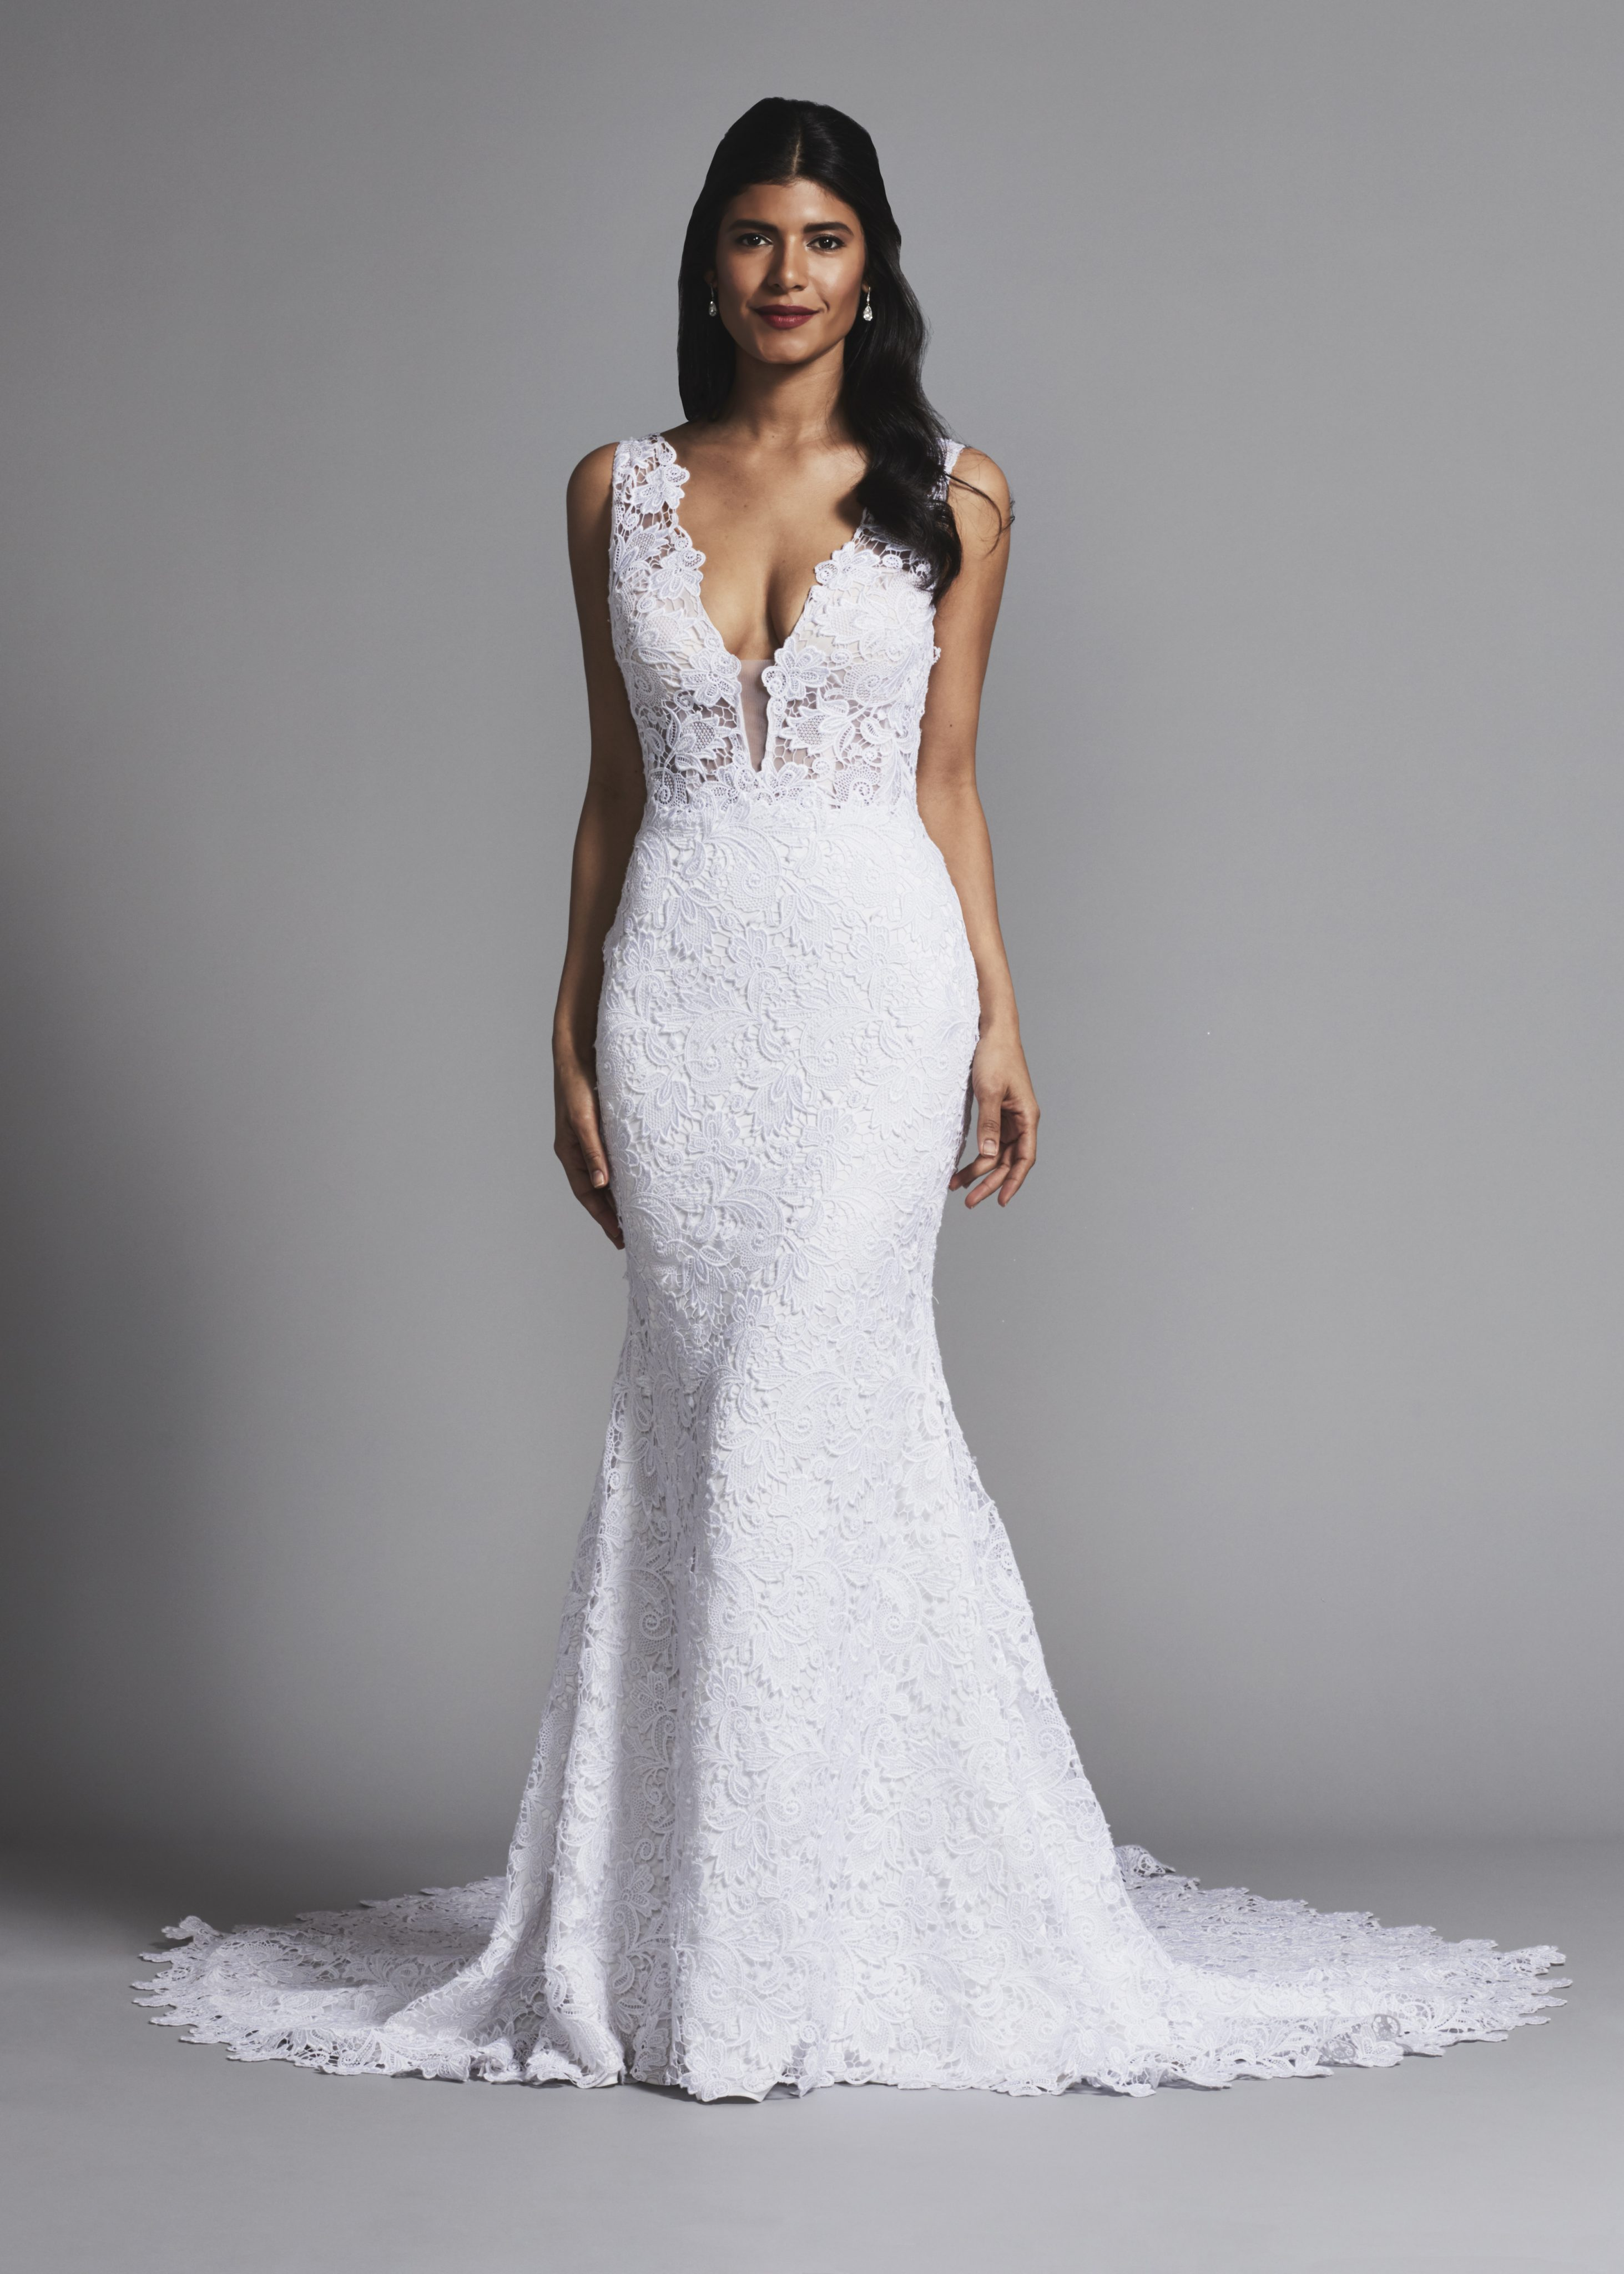 Sexy And Romantic Sleeveless Lace Fit And Flare Wedding